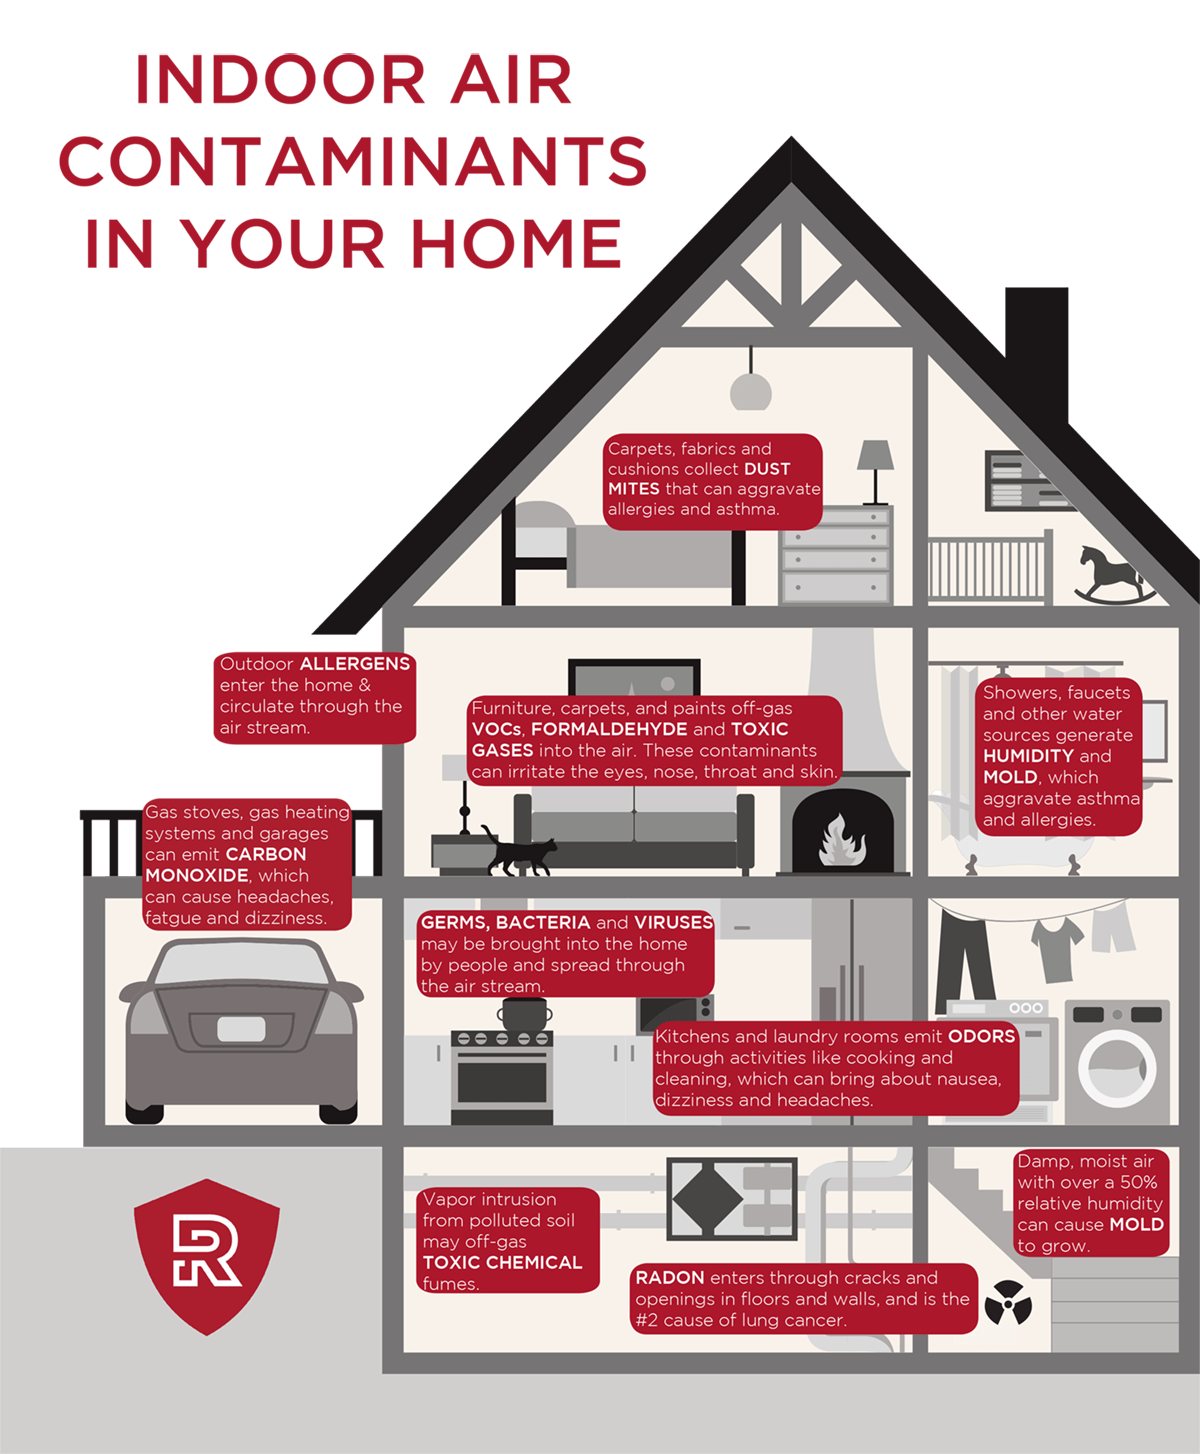 Air contaminants in your home